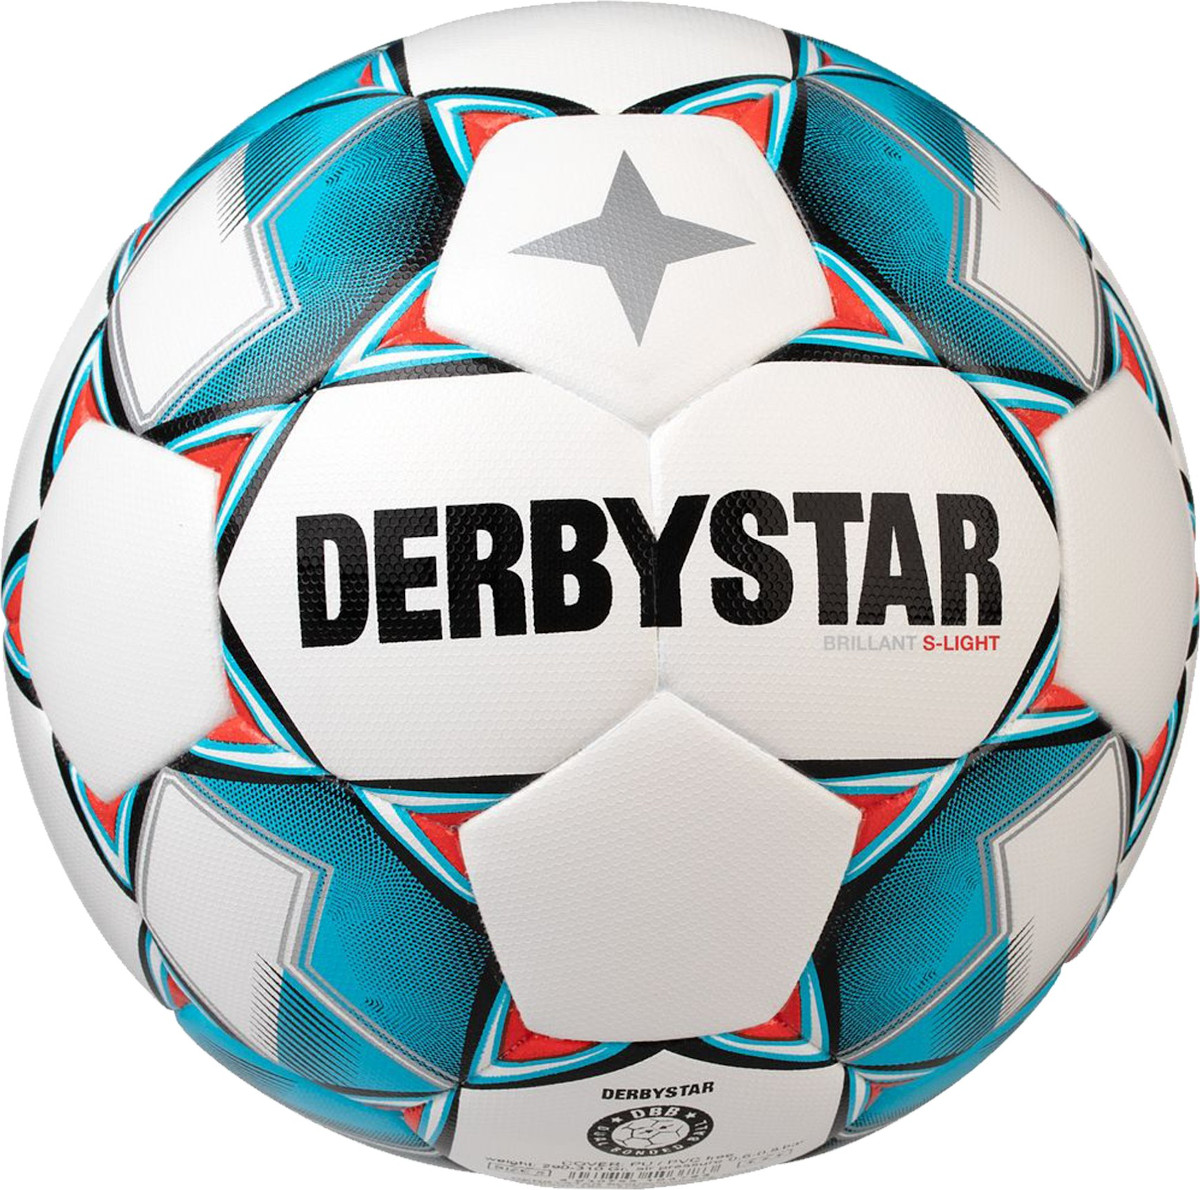 Ball Derbystar Brilliant SLight DB v20 290g training ball